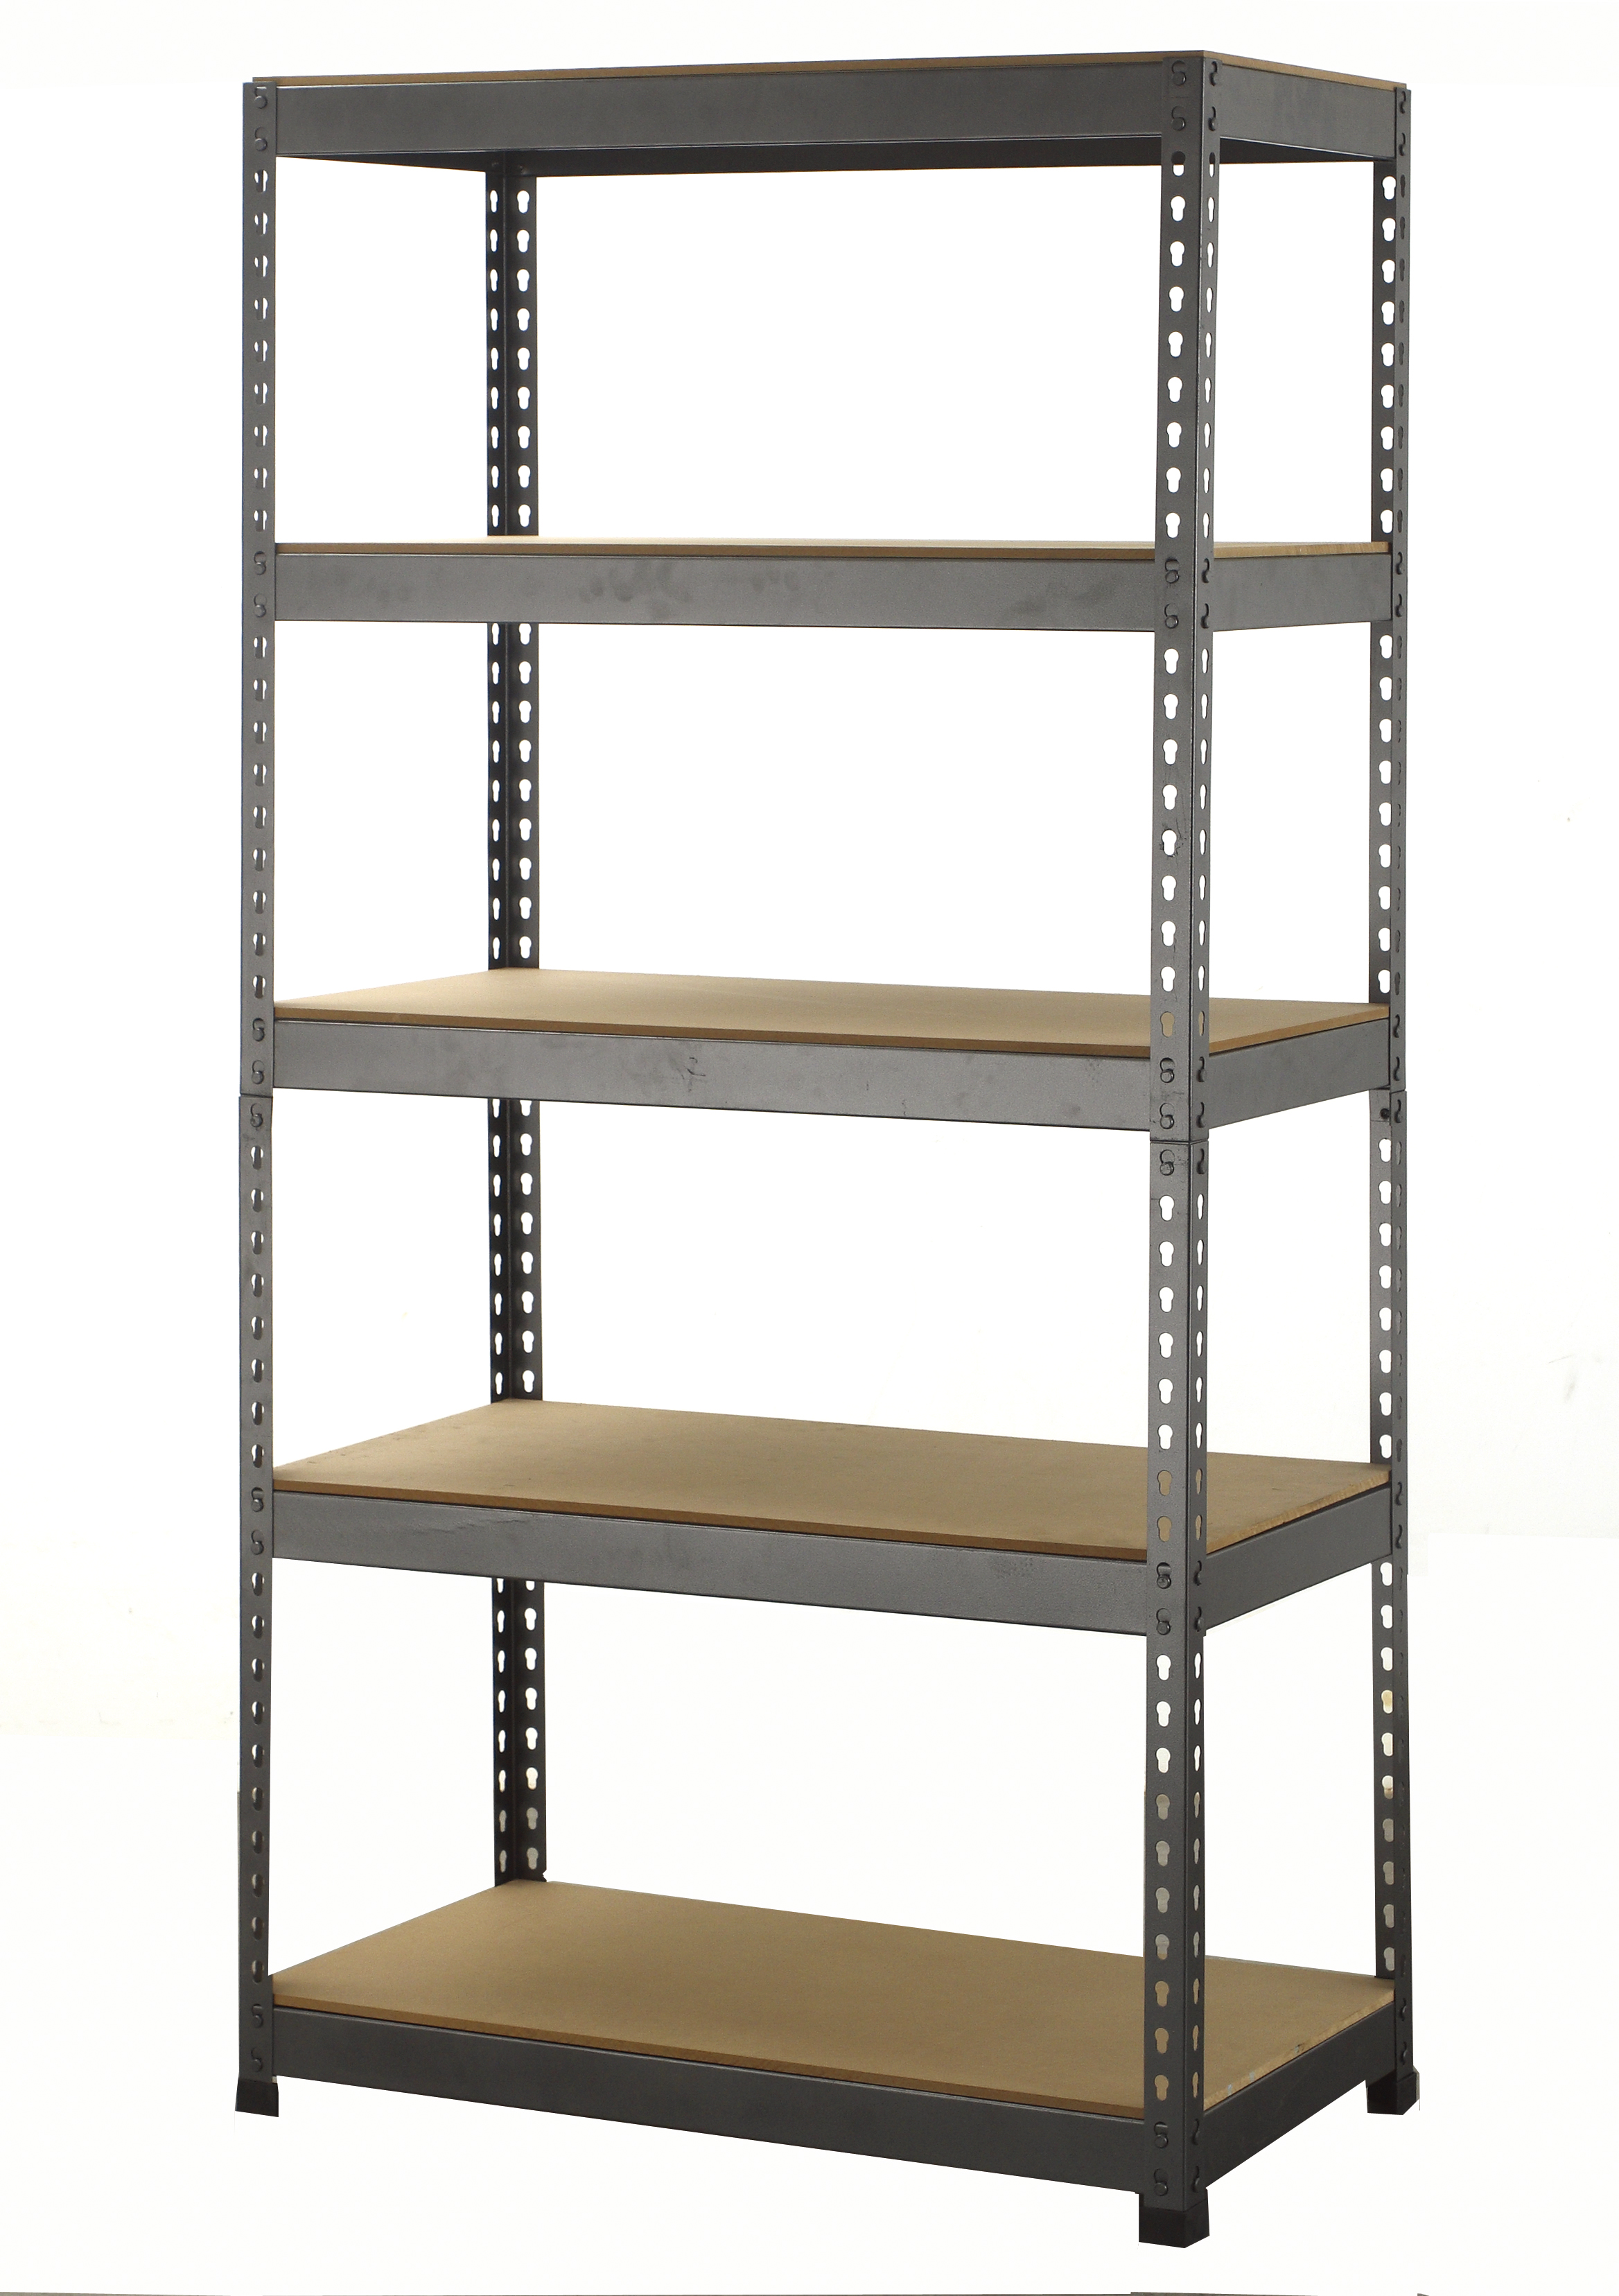 New Shelving Garage Workshop Shelves Warehouse Racking